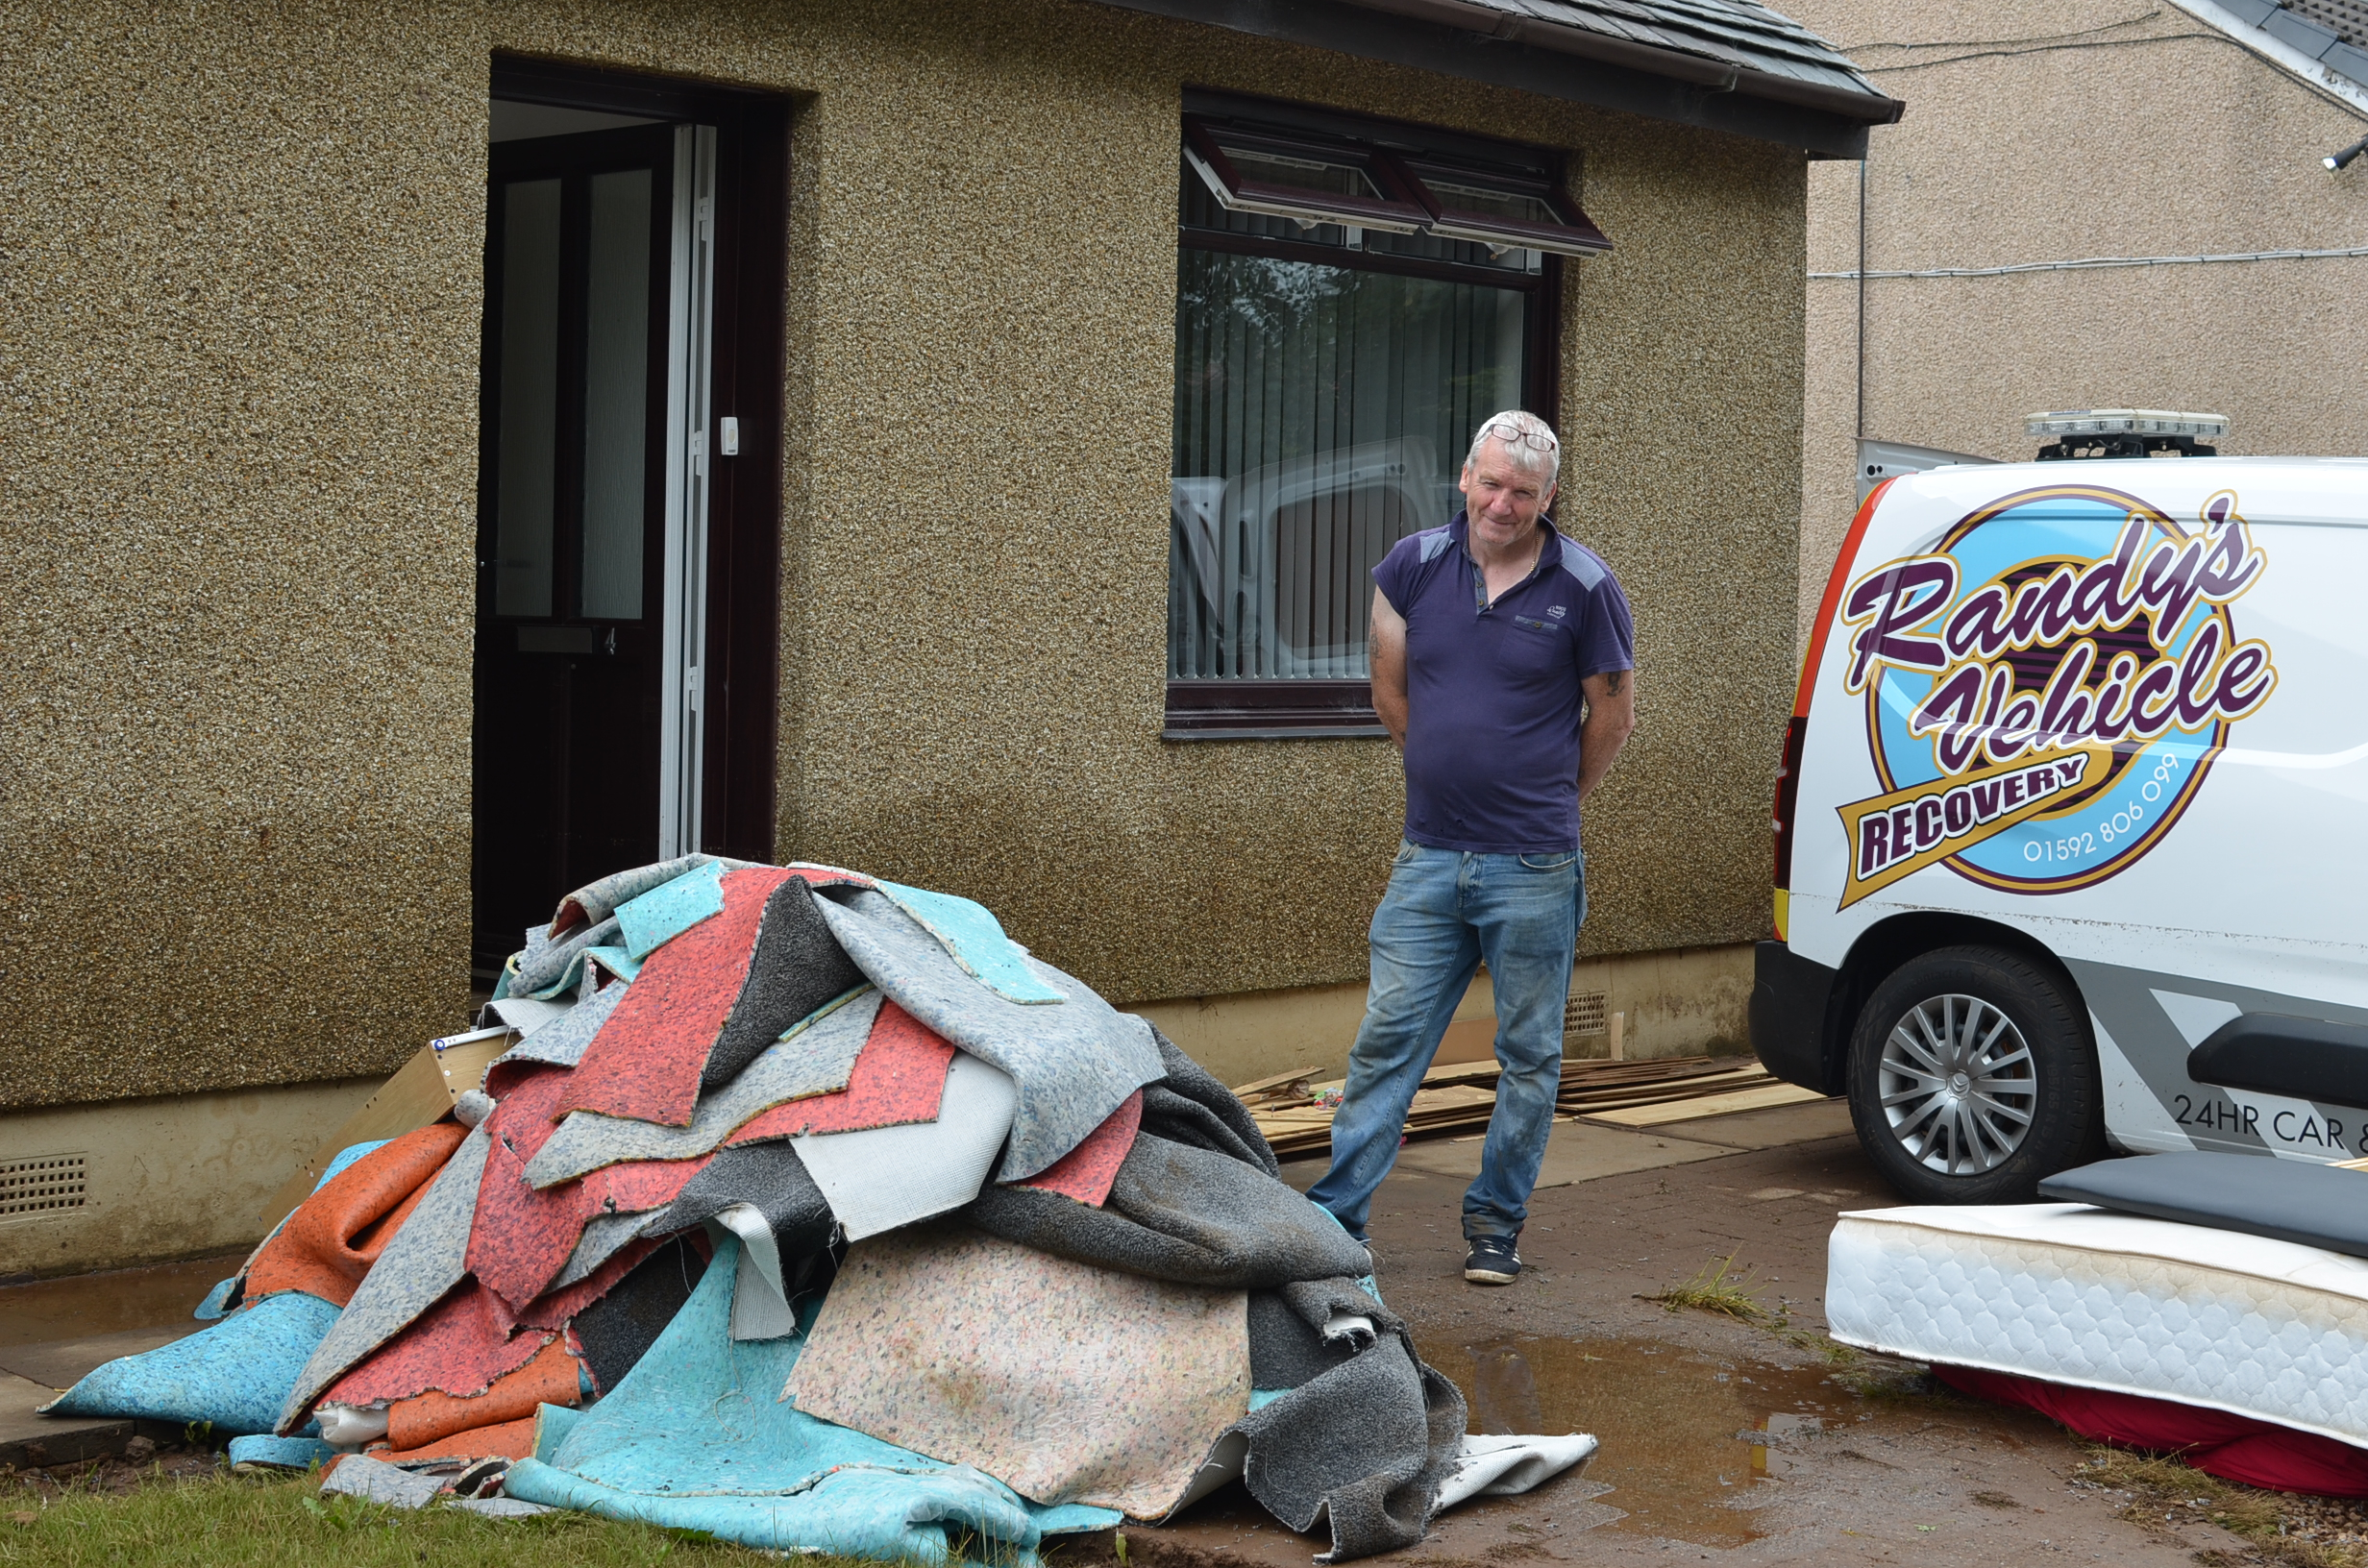 Robert Norrie, 52, clearing out his flood damaged home at Burnside Cottages.